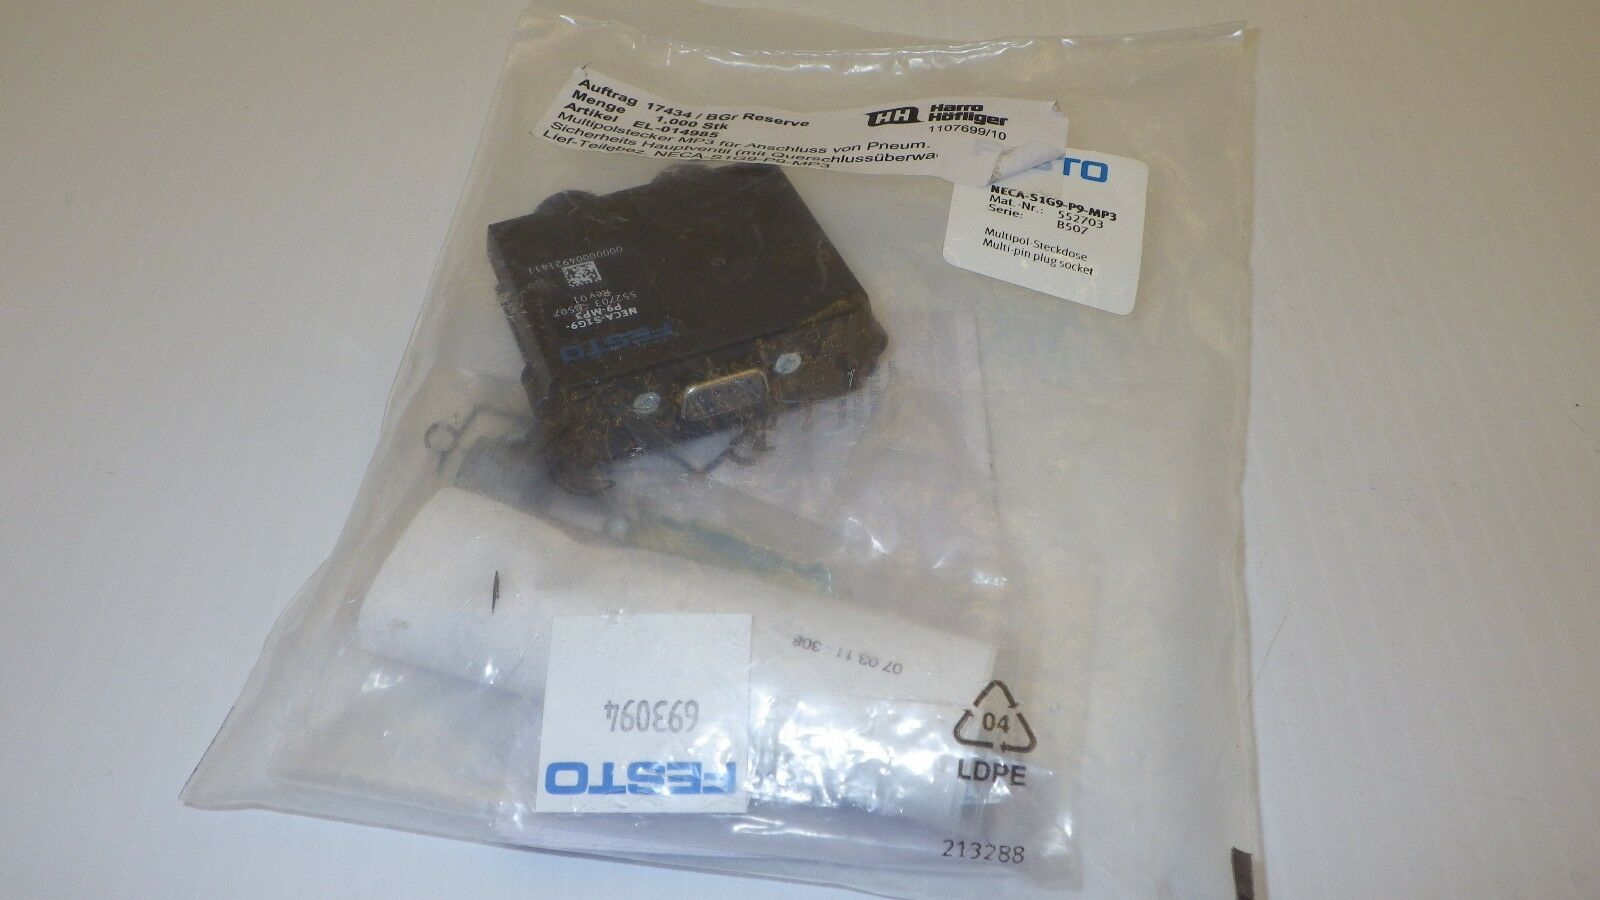 Festo Neca-s1g9-p9-mp3 Series B507 Multi-pin Plug Socket | eBay